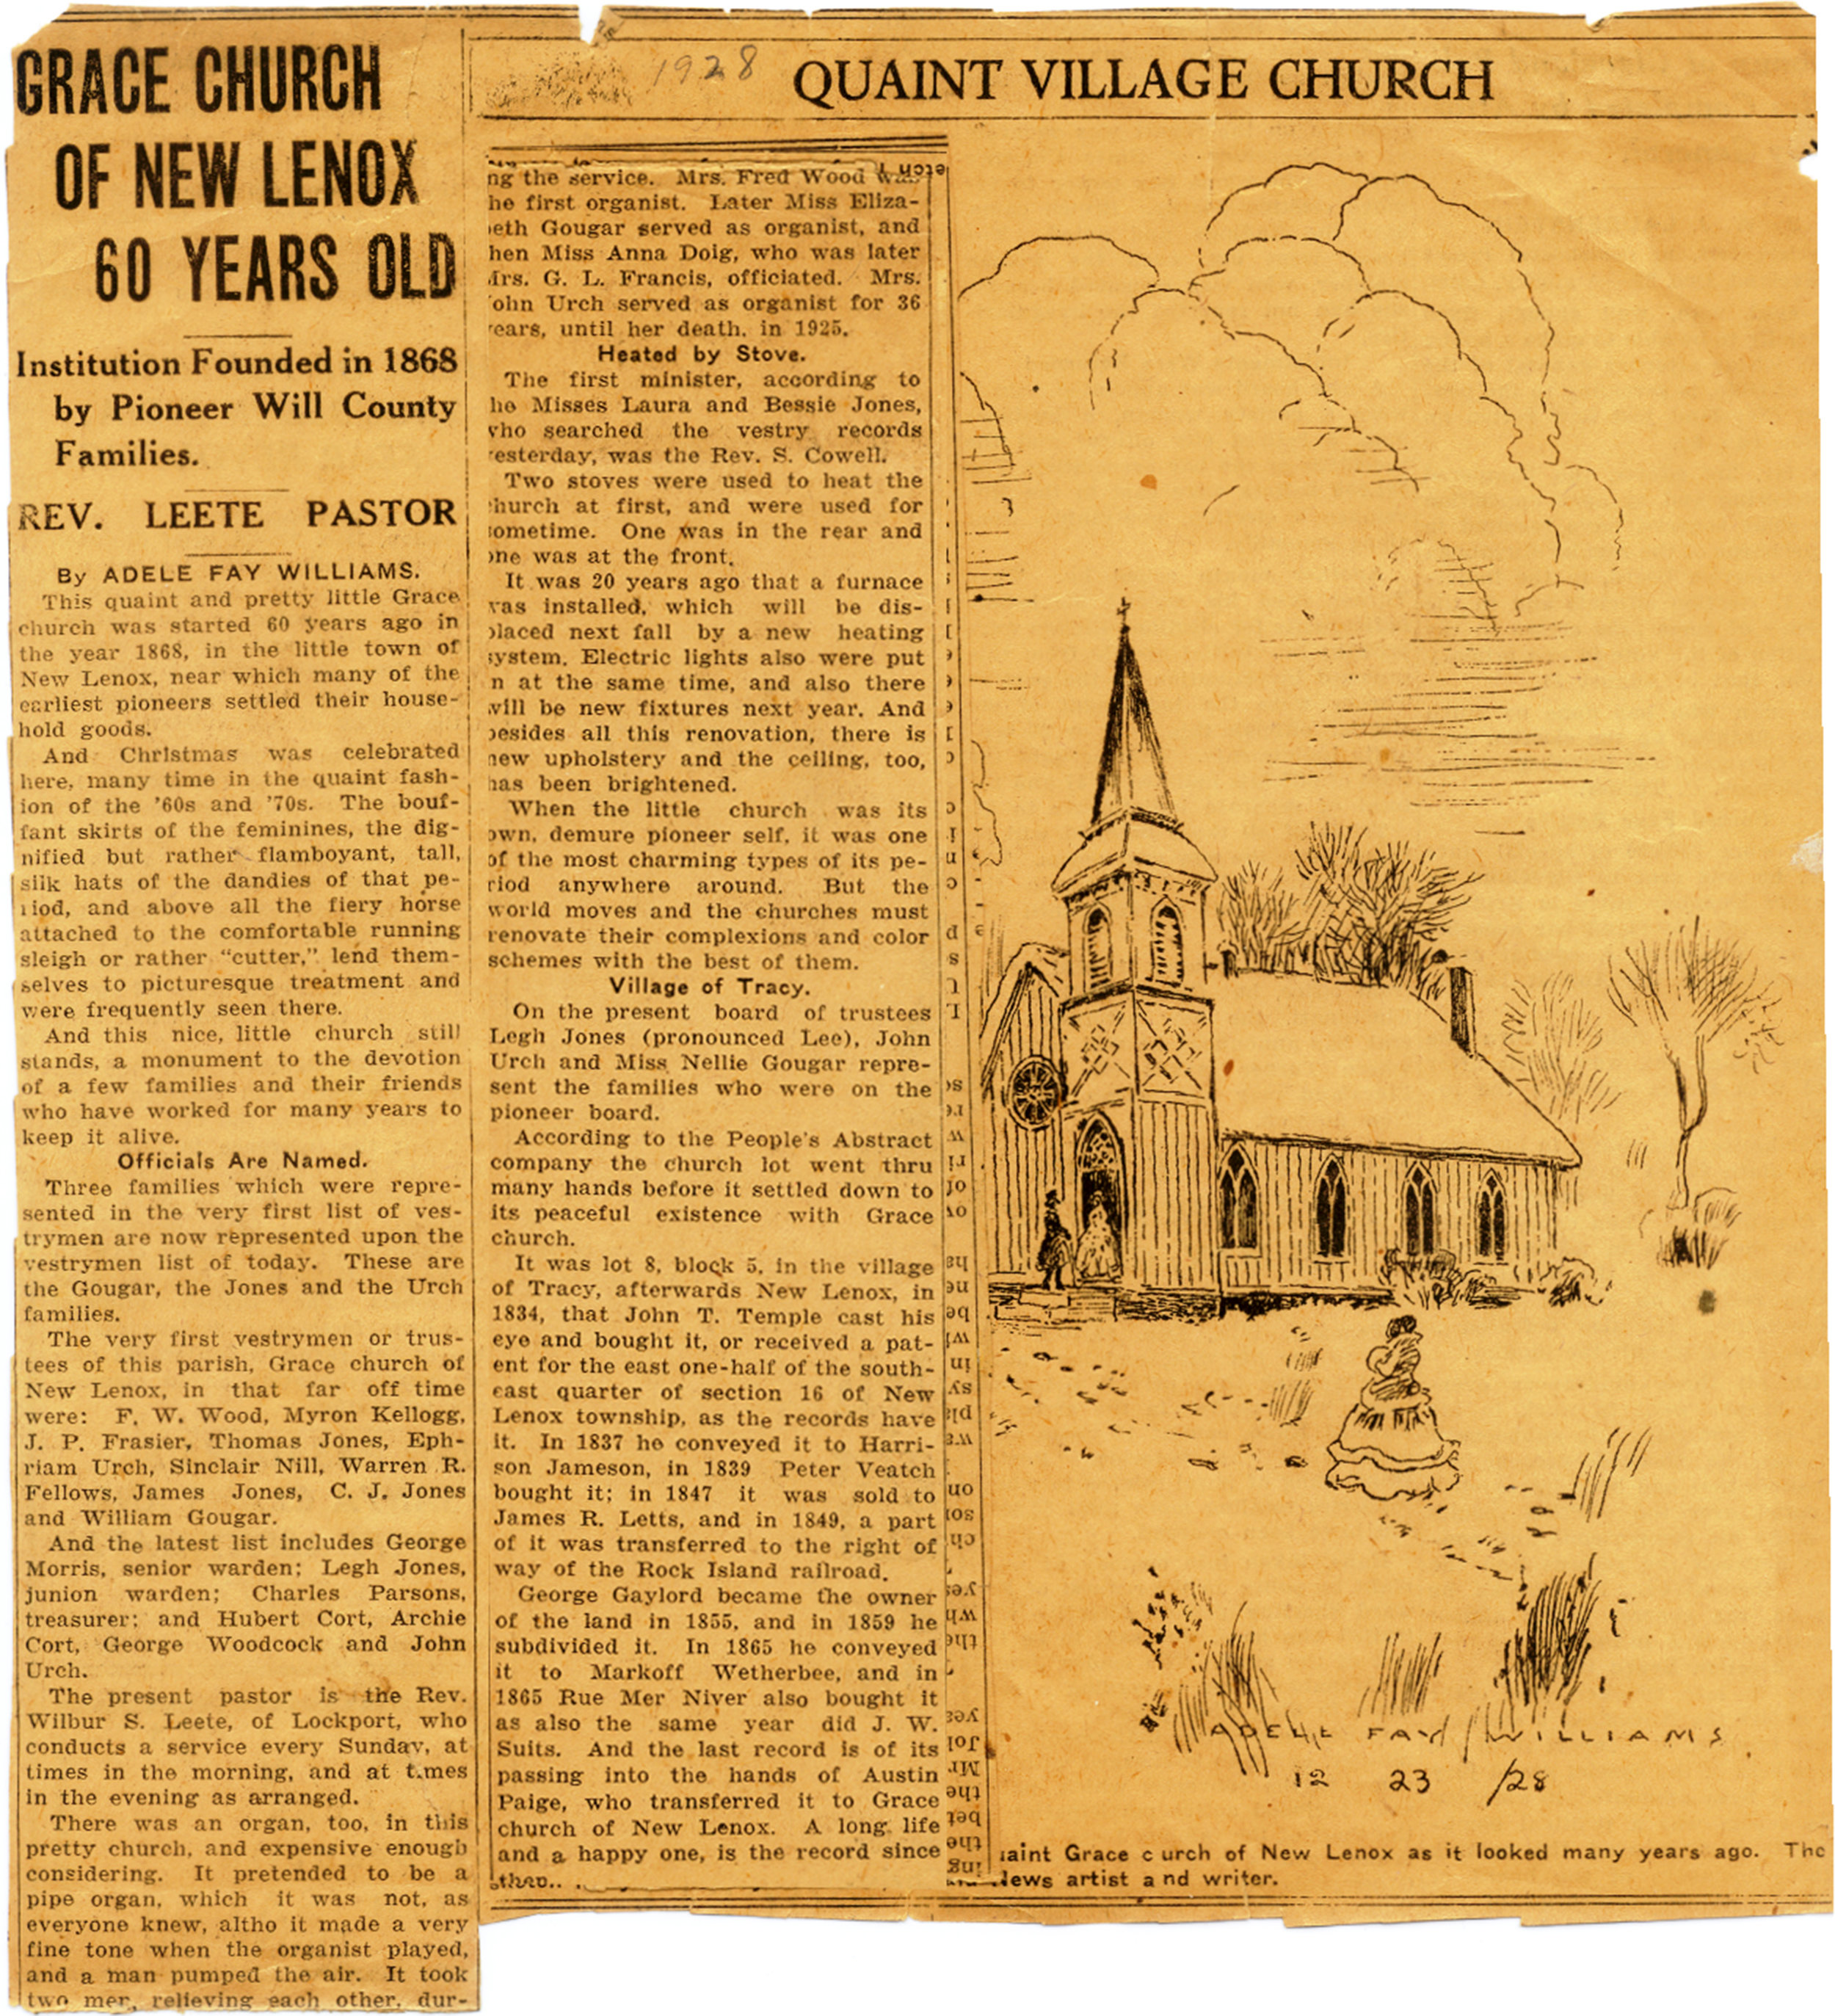 Adele Fay Williams sketched an illustration of the church and wrote this article on the occasion of Grace's 60th Anniversary year.